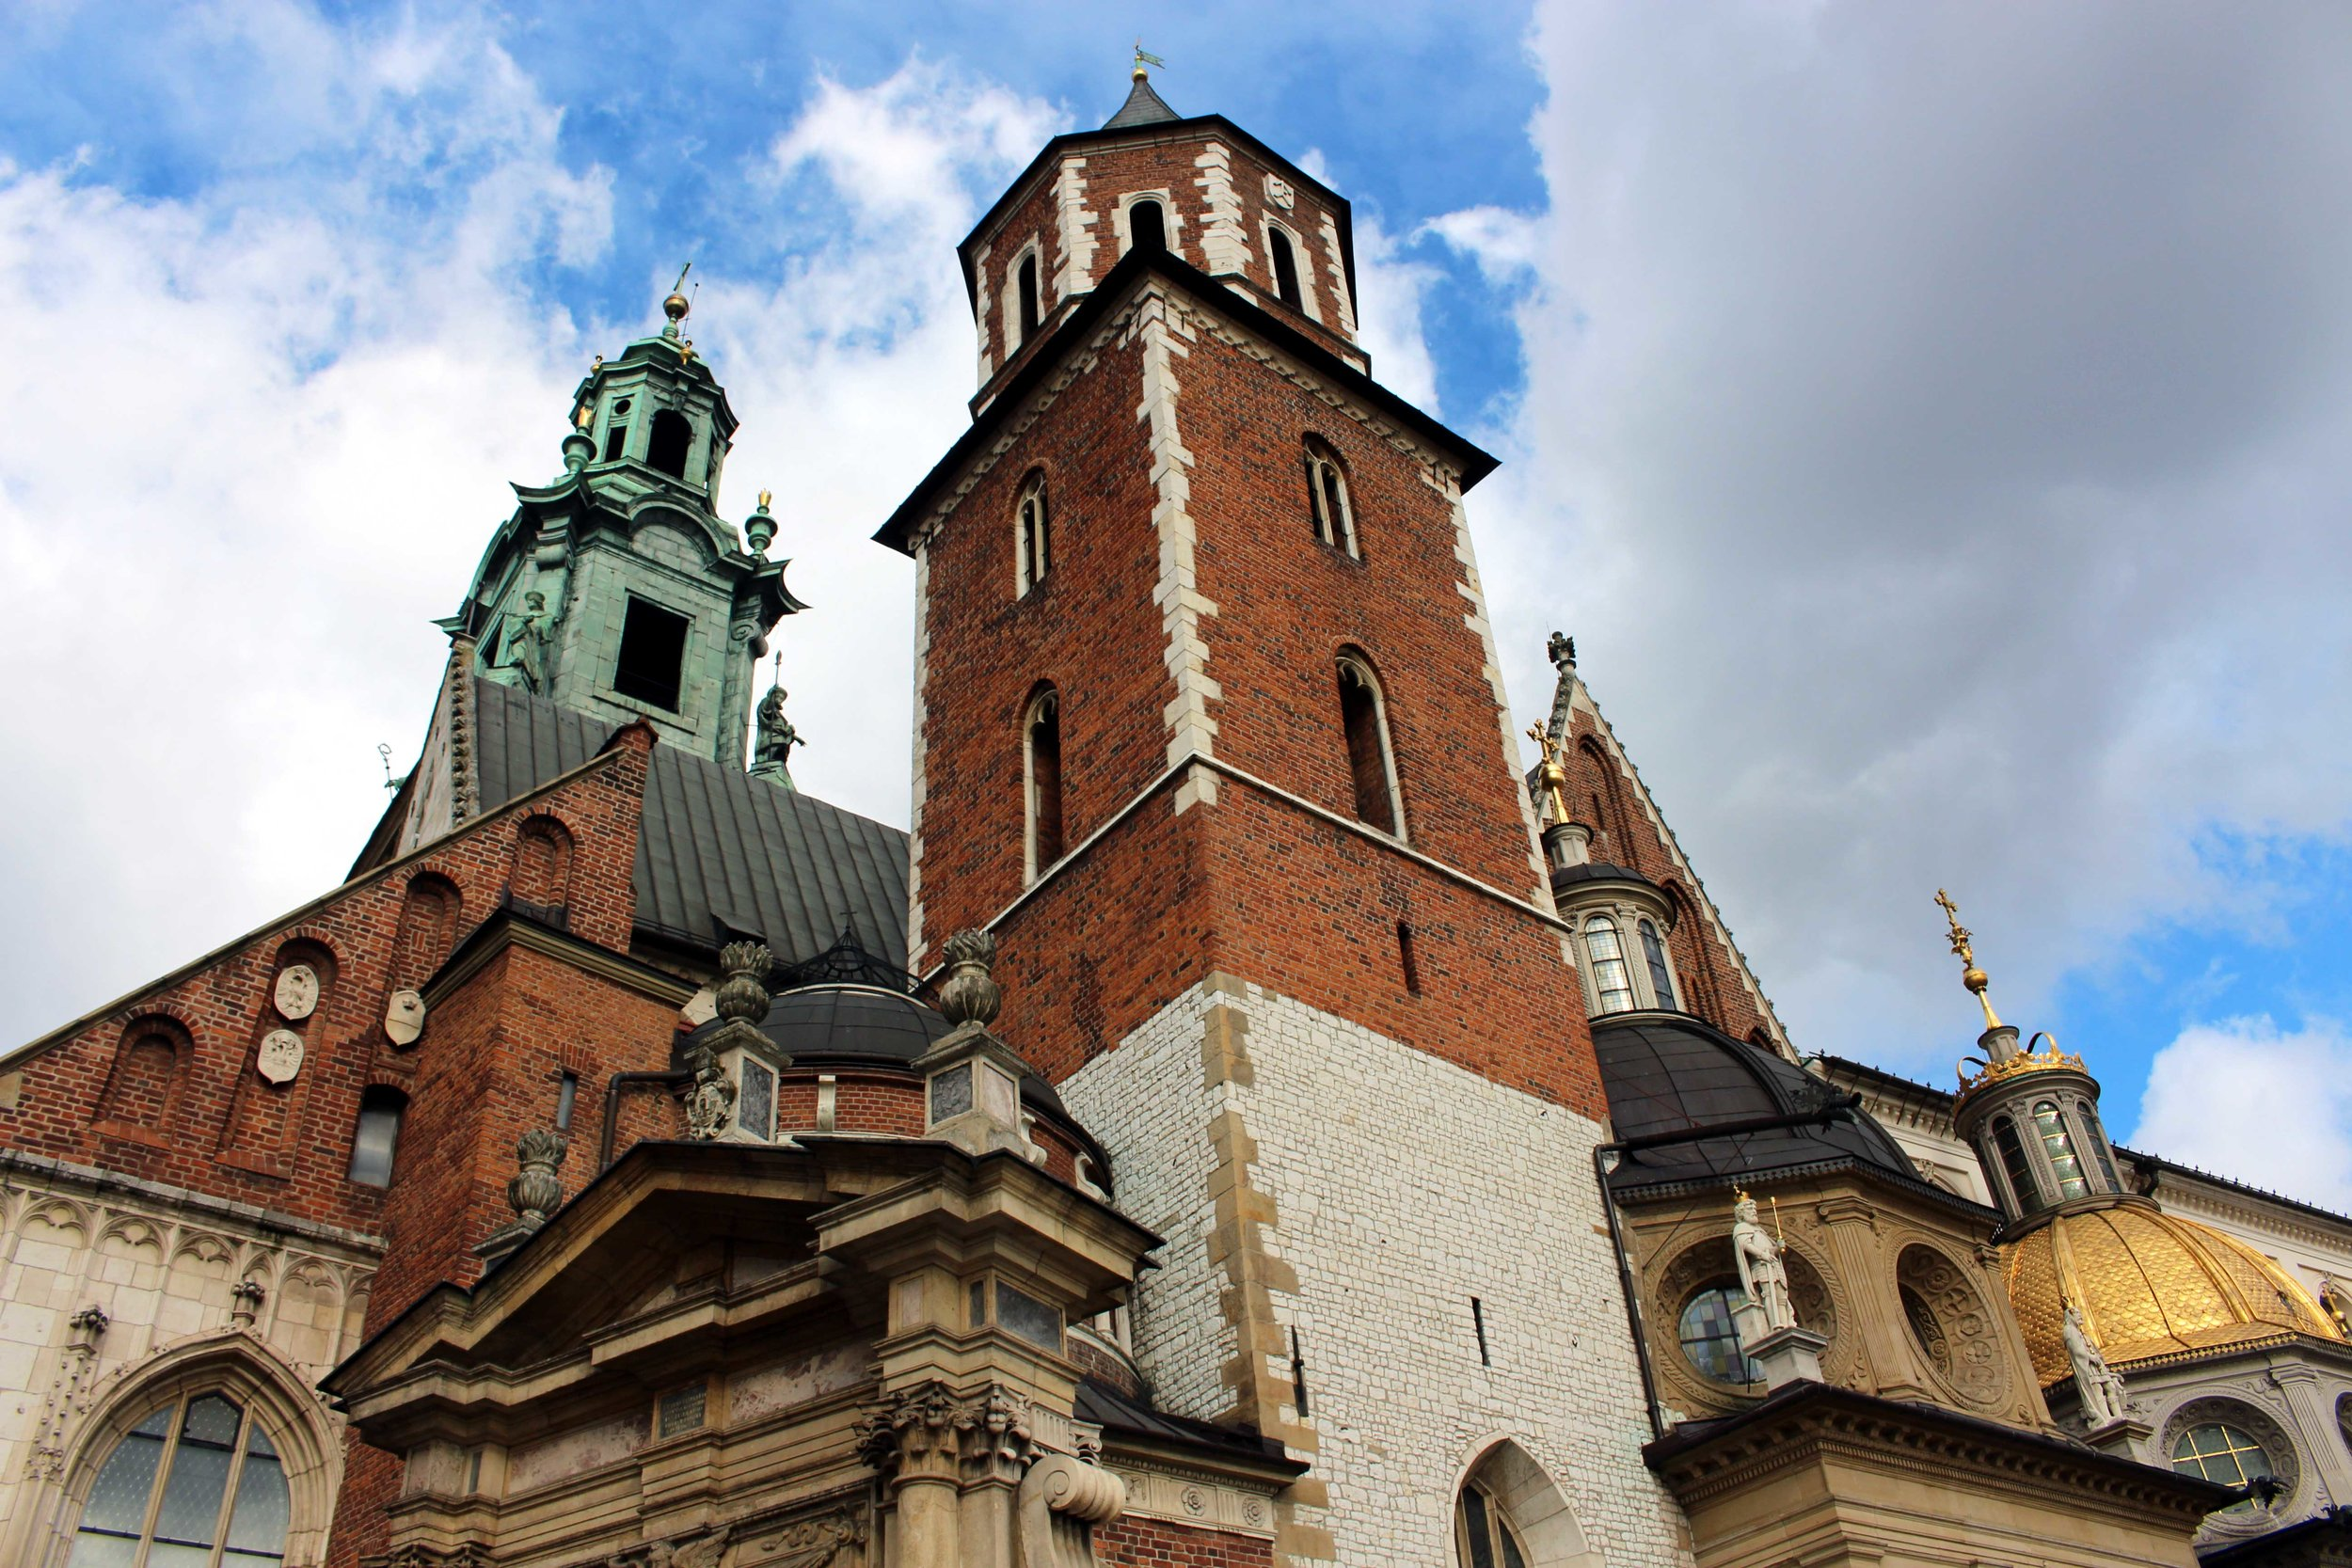 Though I was there for less than a day, I got a month's worth of walking done in Kraków ,  seeing sites like this one, the Wawel Royal Castle.